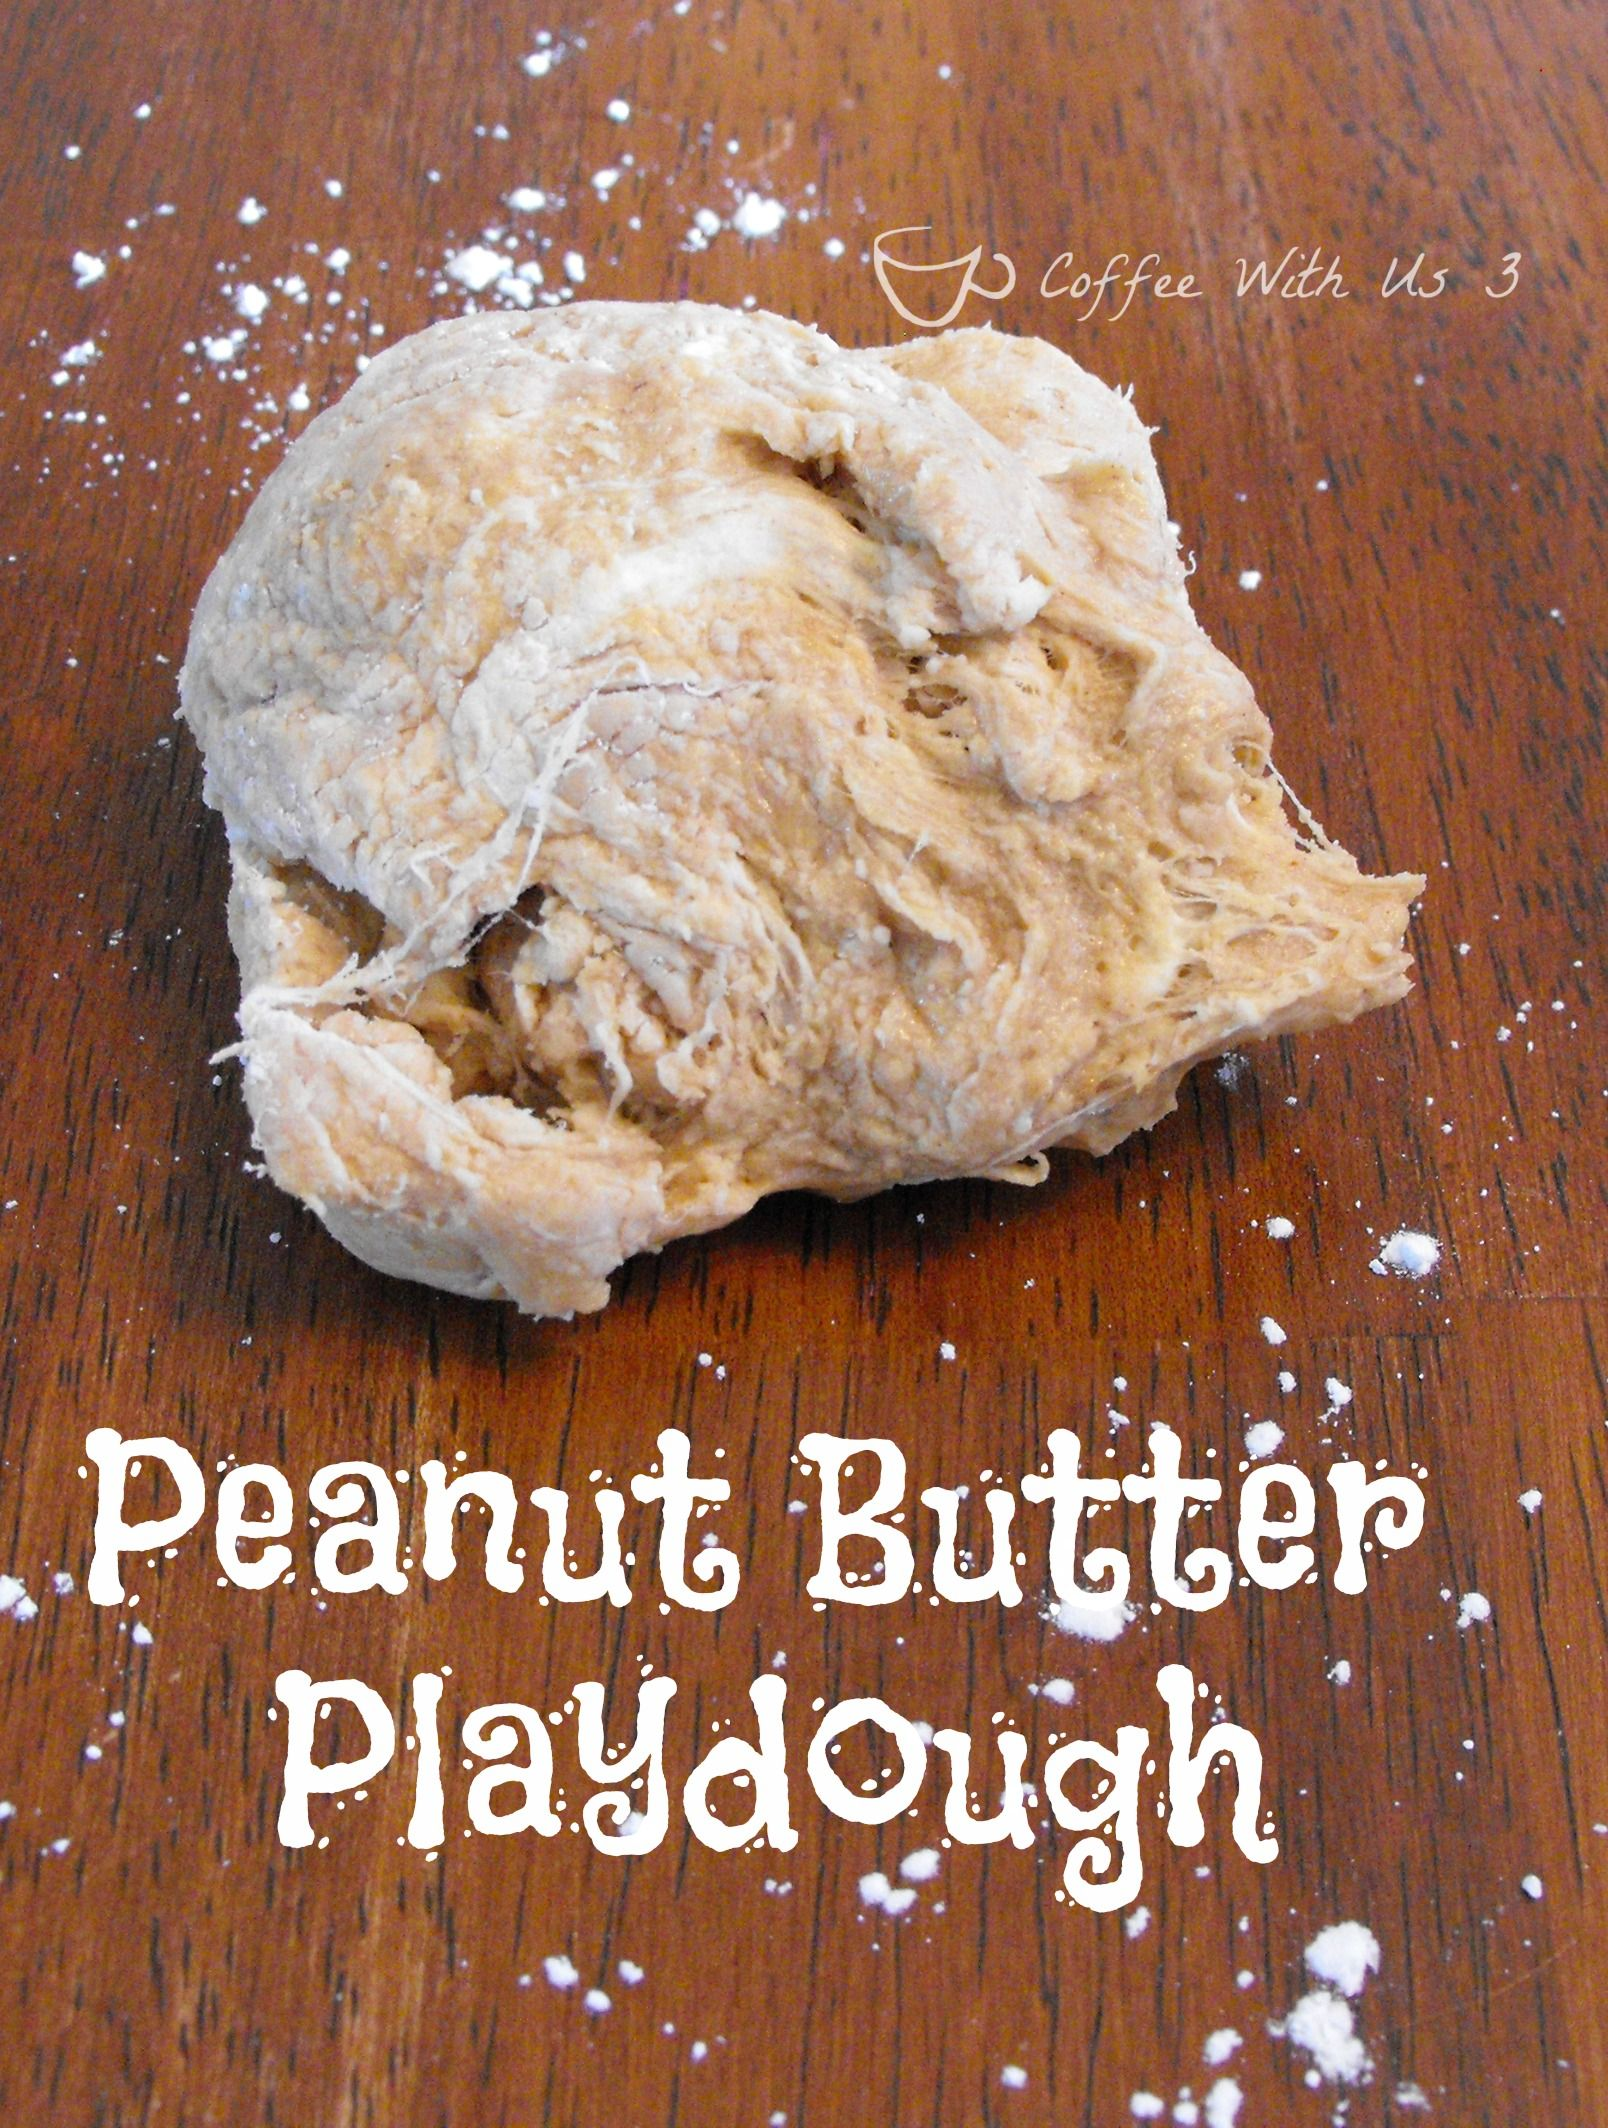 Peanut Butter Playdough